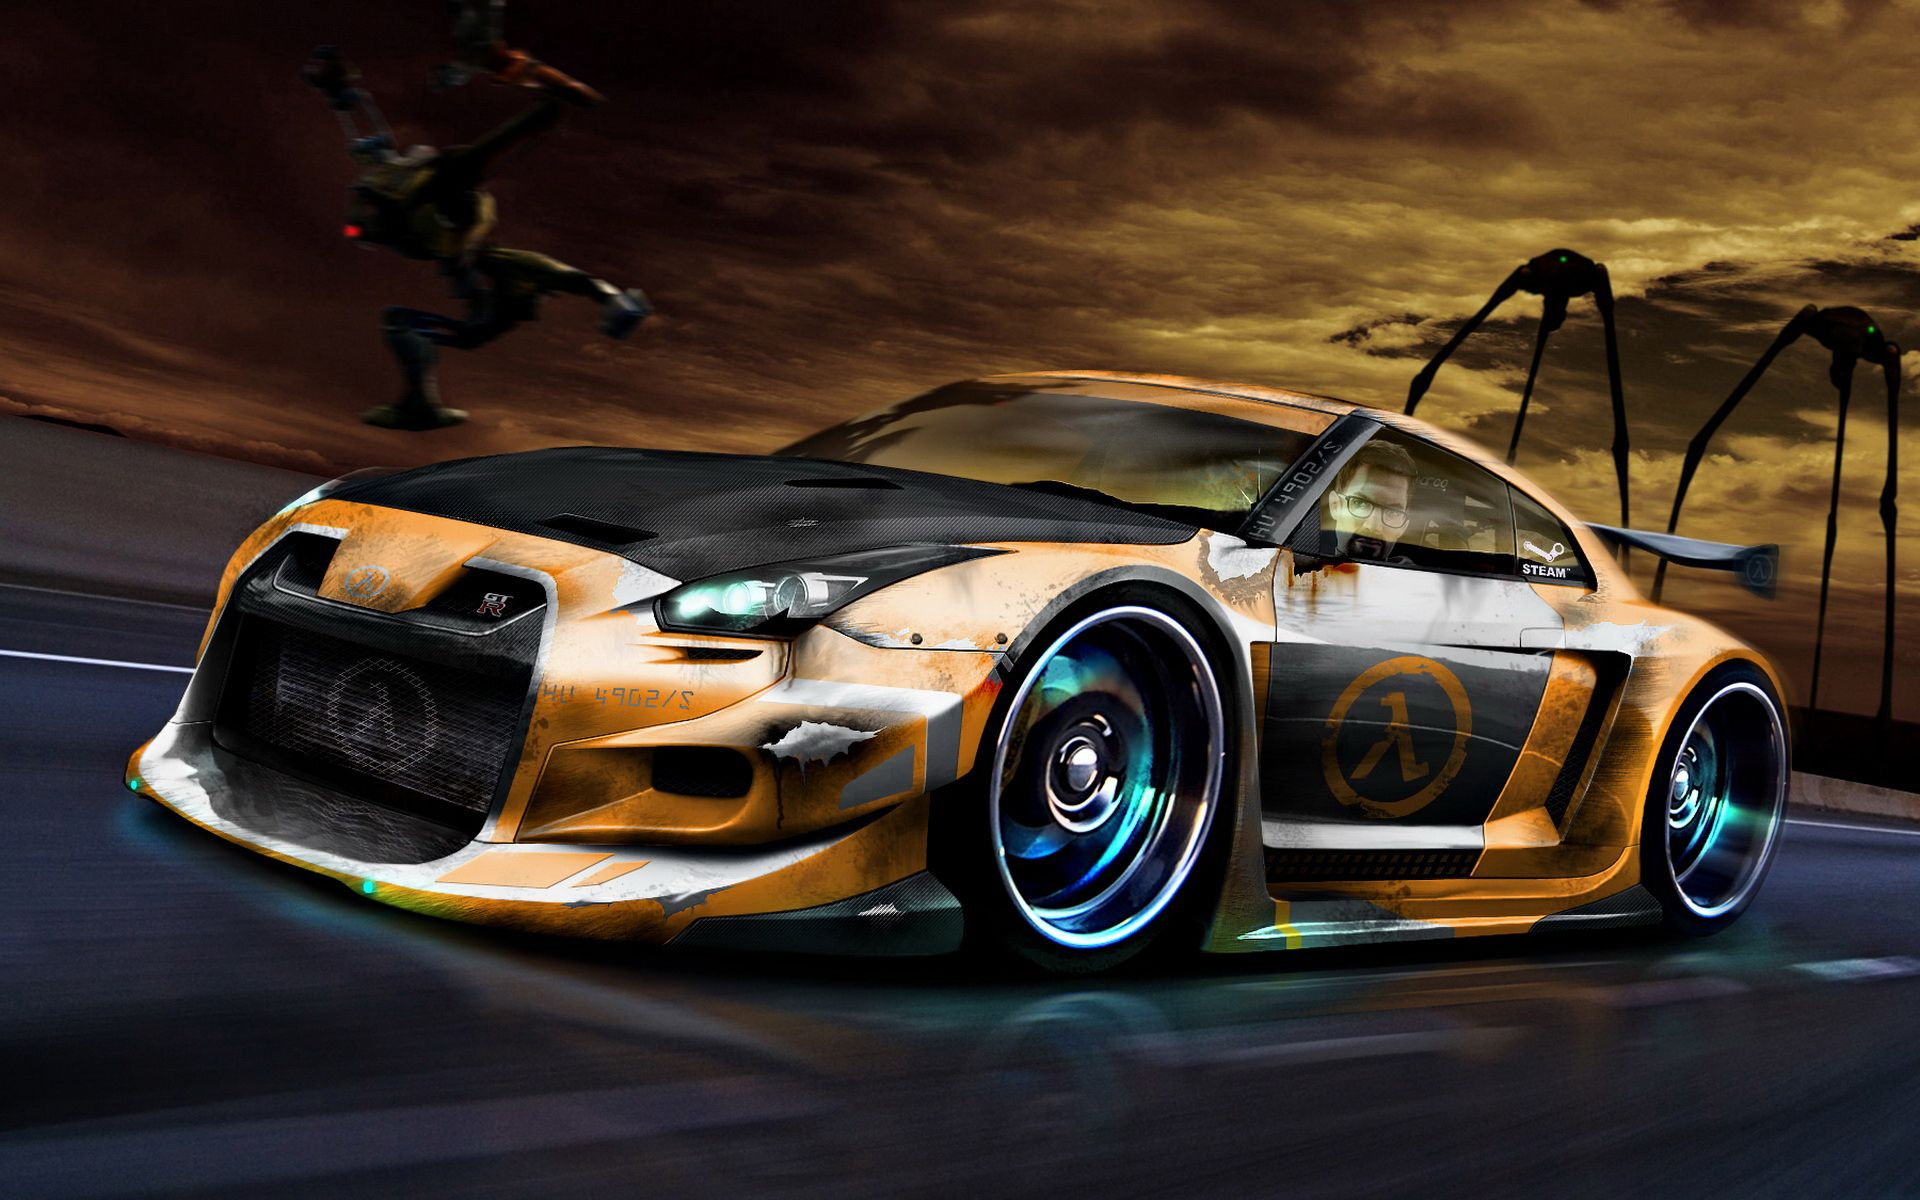 Street Racing Car Pics Cool Sports Car Wallpaper Auto Desktop Background Cool Car Wallpapers Hd Cool Car Pictures Sports Car Wallpaper